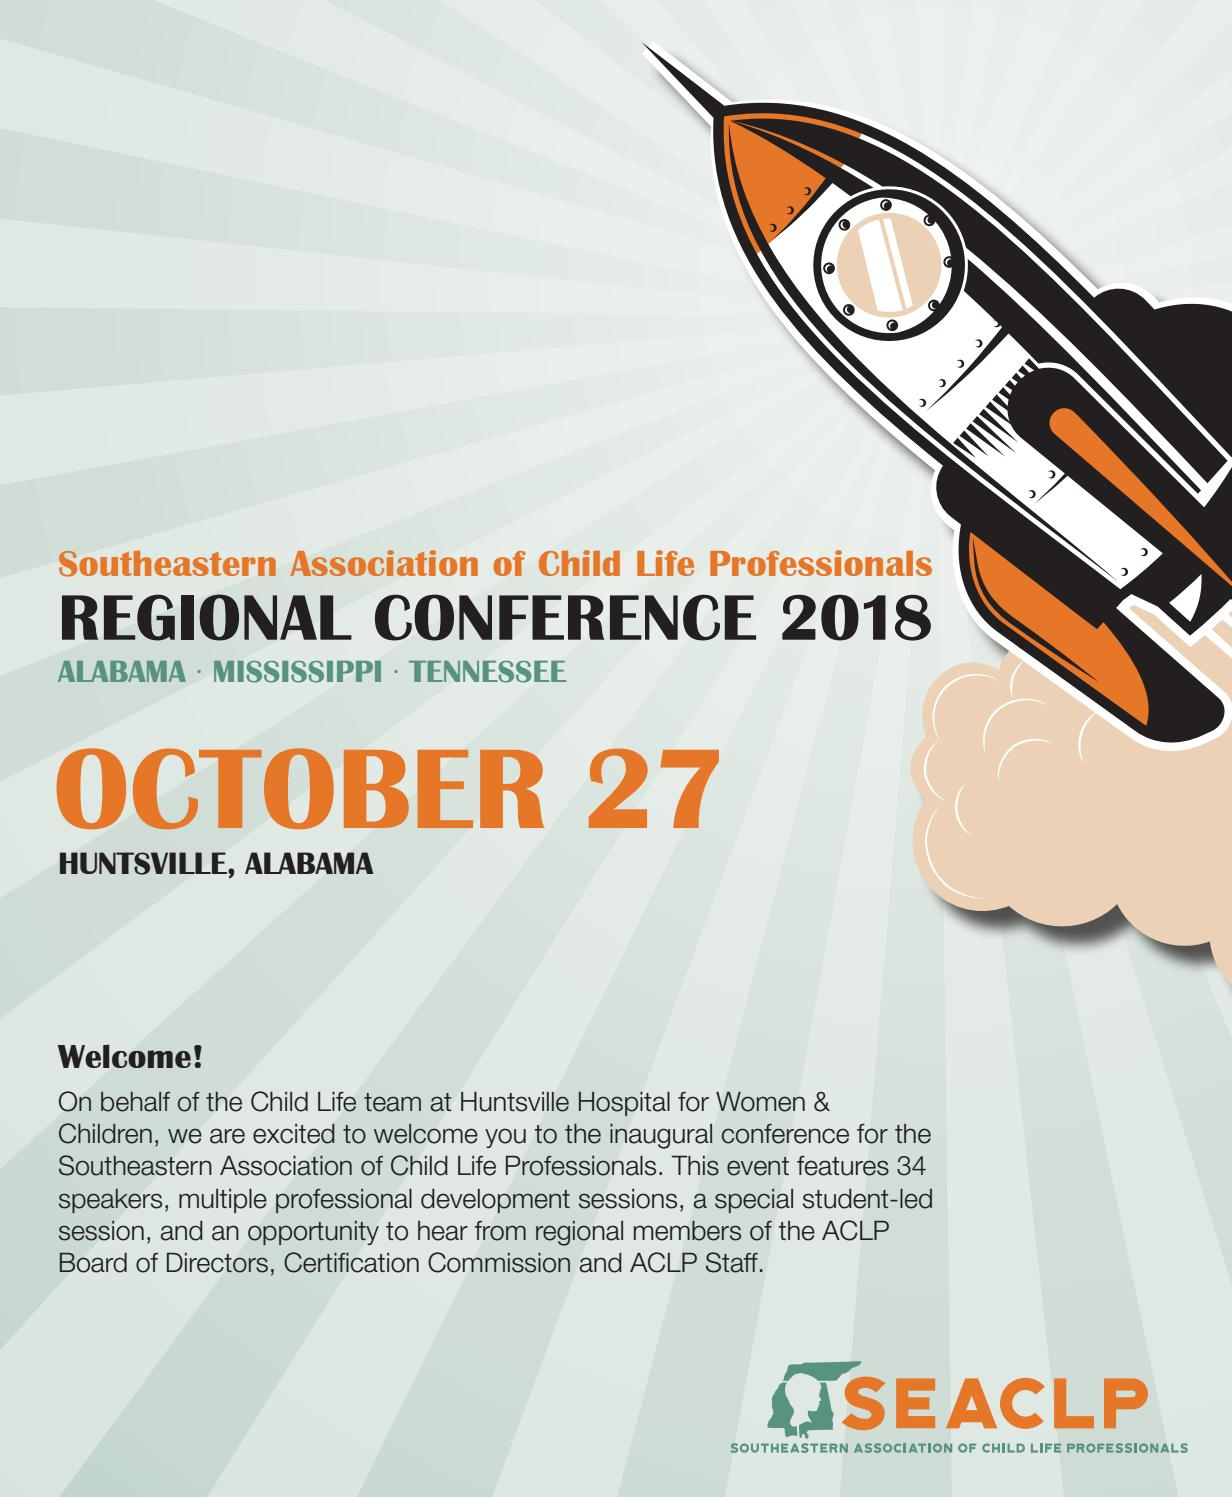 Southeastern Regional Child Life Conference Program By Huntsville